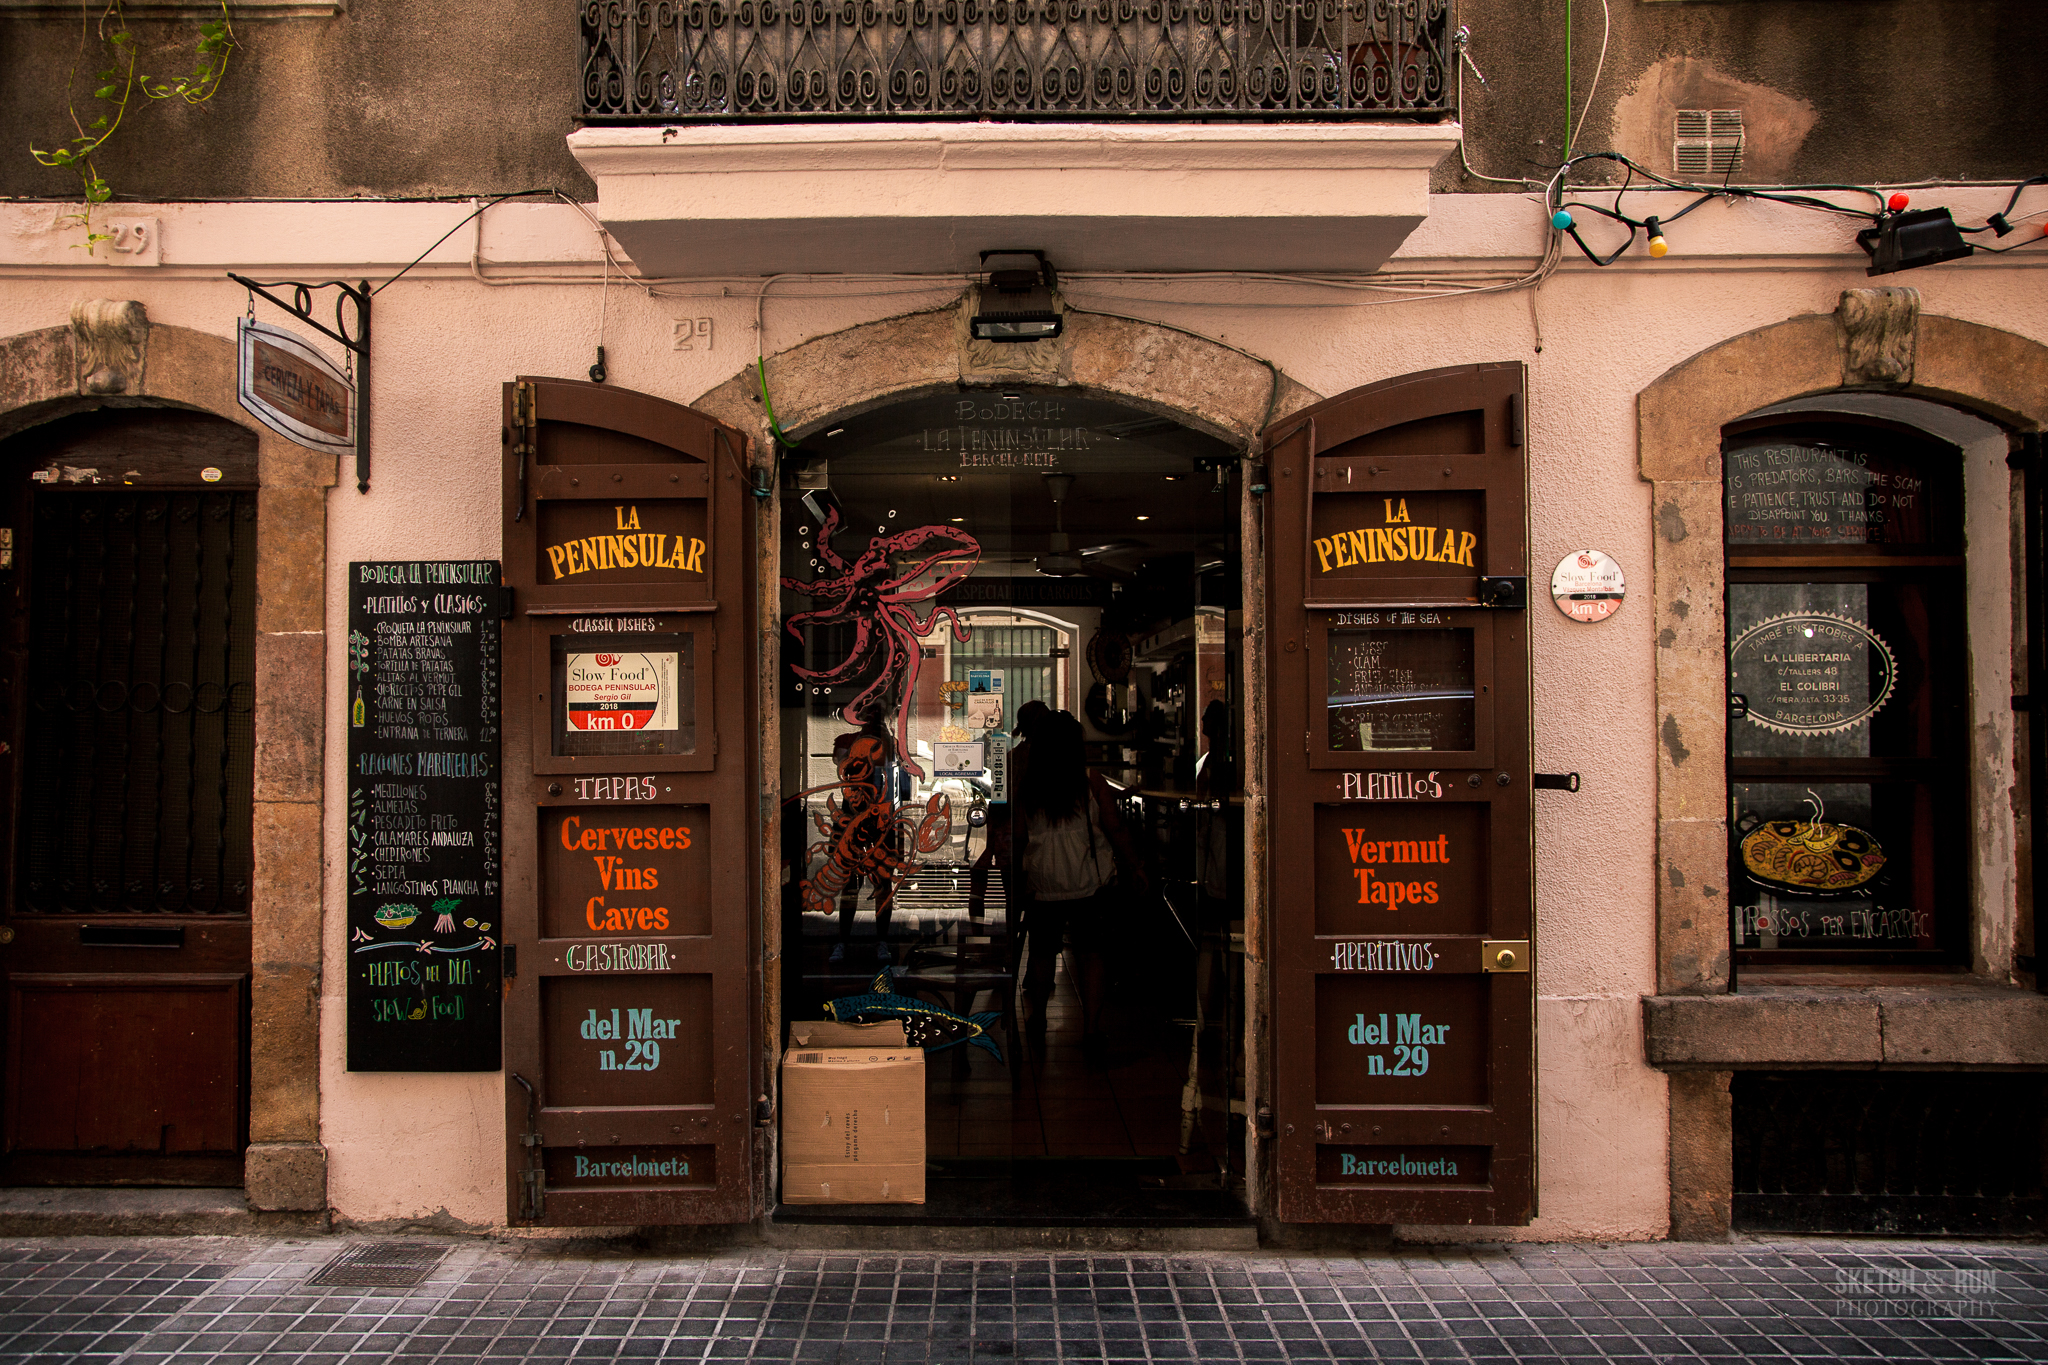 barcelonaday4-17.jpg